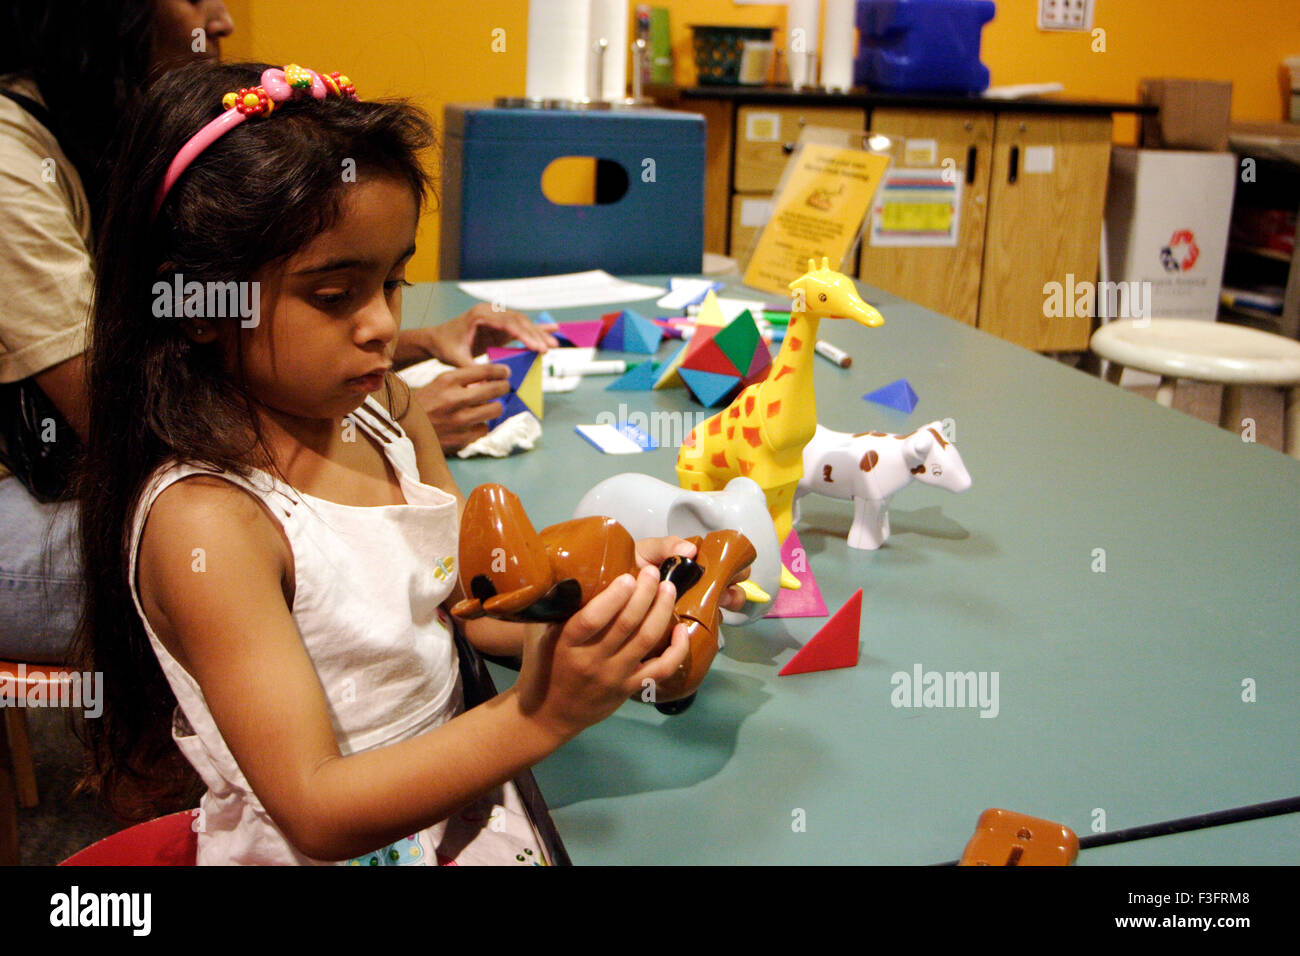 Girl trying to assemble toy in Denver Museum - Stock Image